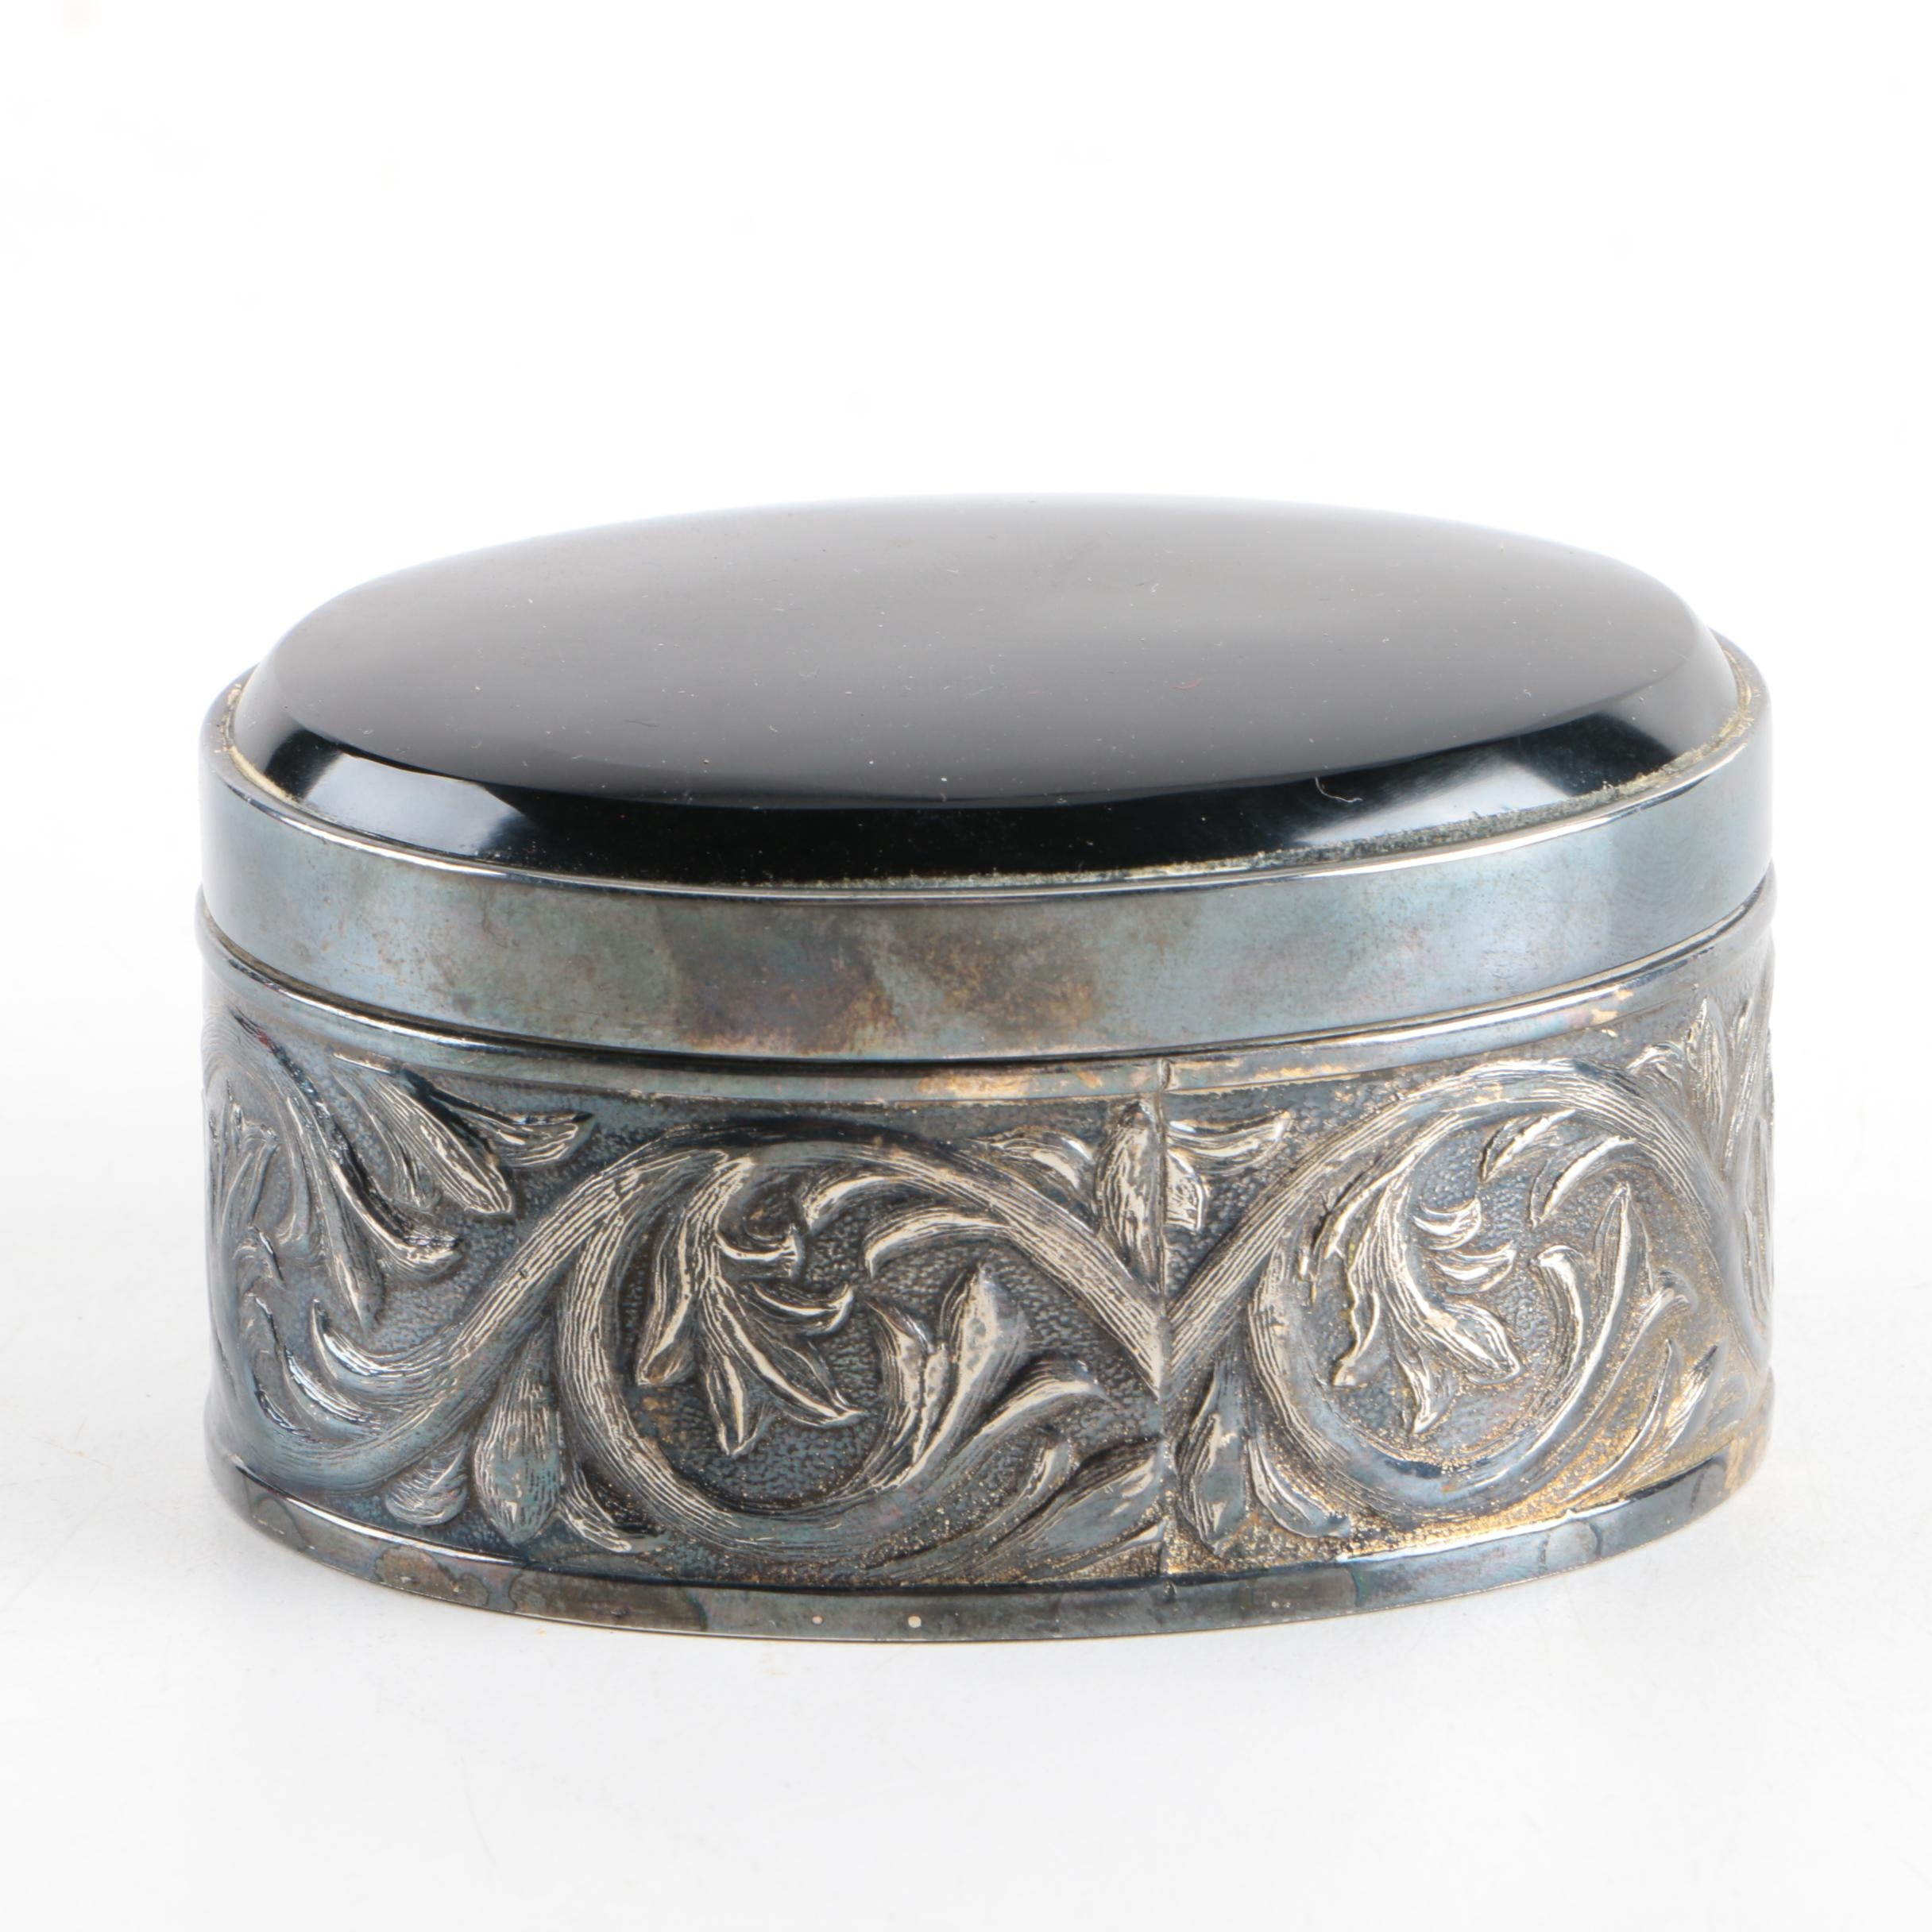 Mexican Ornate Silver Plate Trinket Box with Black Glass Top